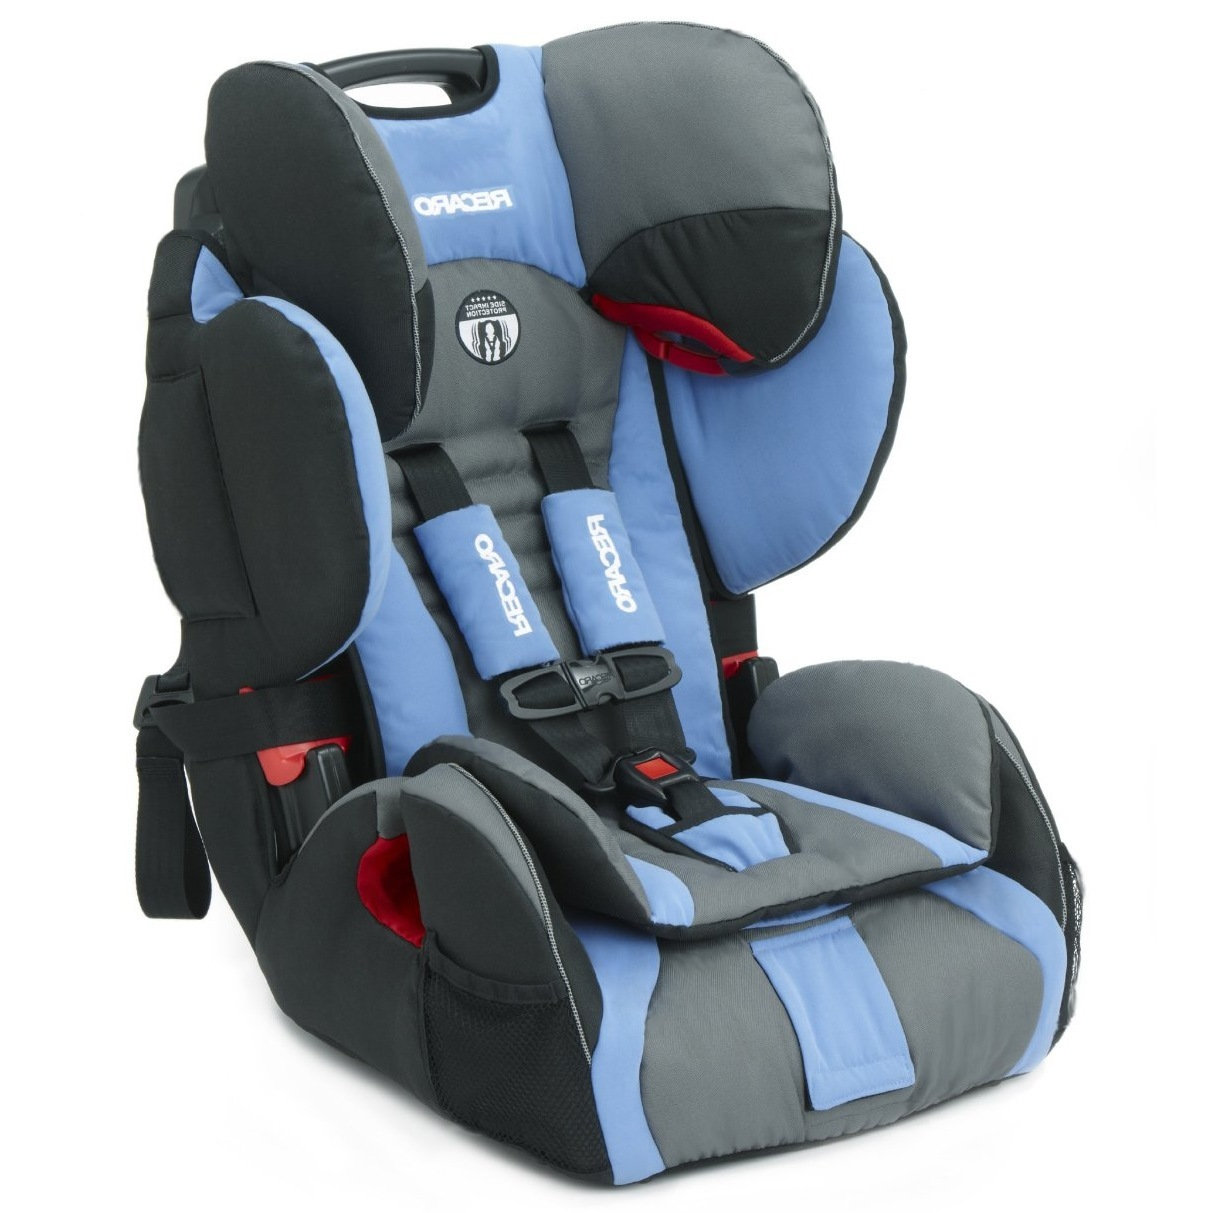 Recaro Young Sport Black Fotelik Samochodowy 9 36 Kg likewise Recaro prosport additionally Product Por 11321 Fotelik Dzieciecy Recaro Young Sport Hero Dakar Sand 9 36kg in addition 371271839264 moreover DNWXCBBBM. on recaro young sport